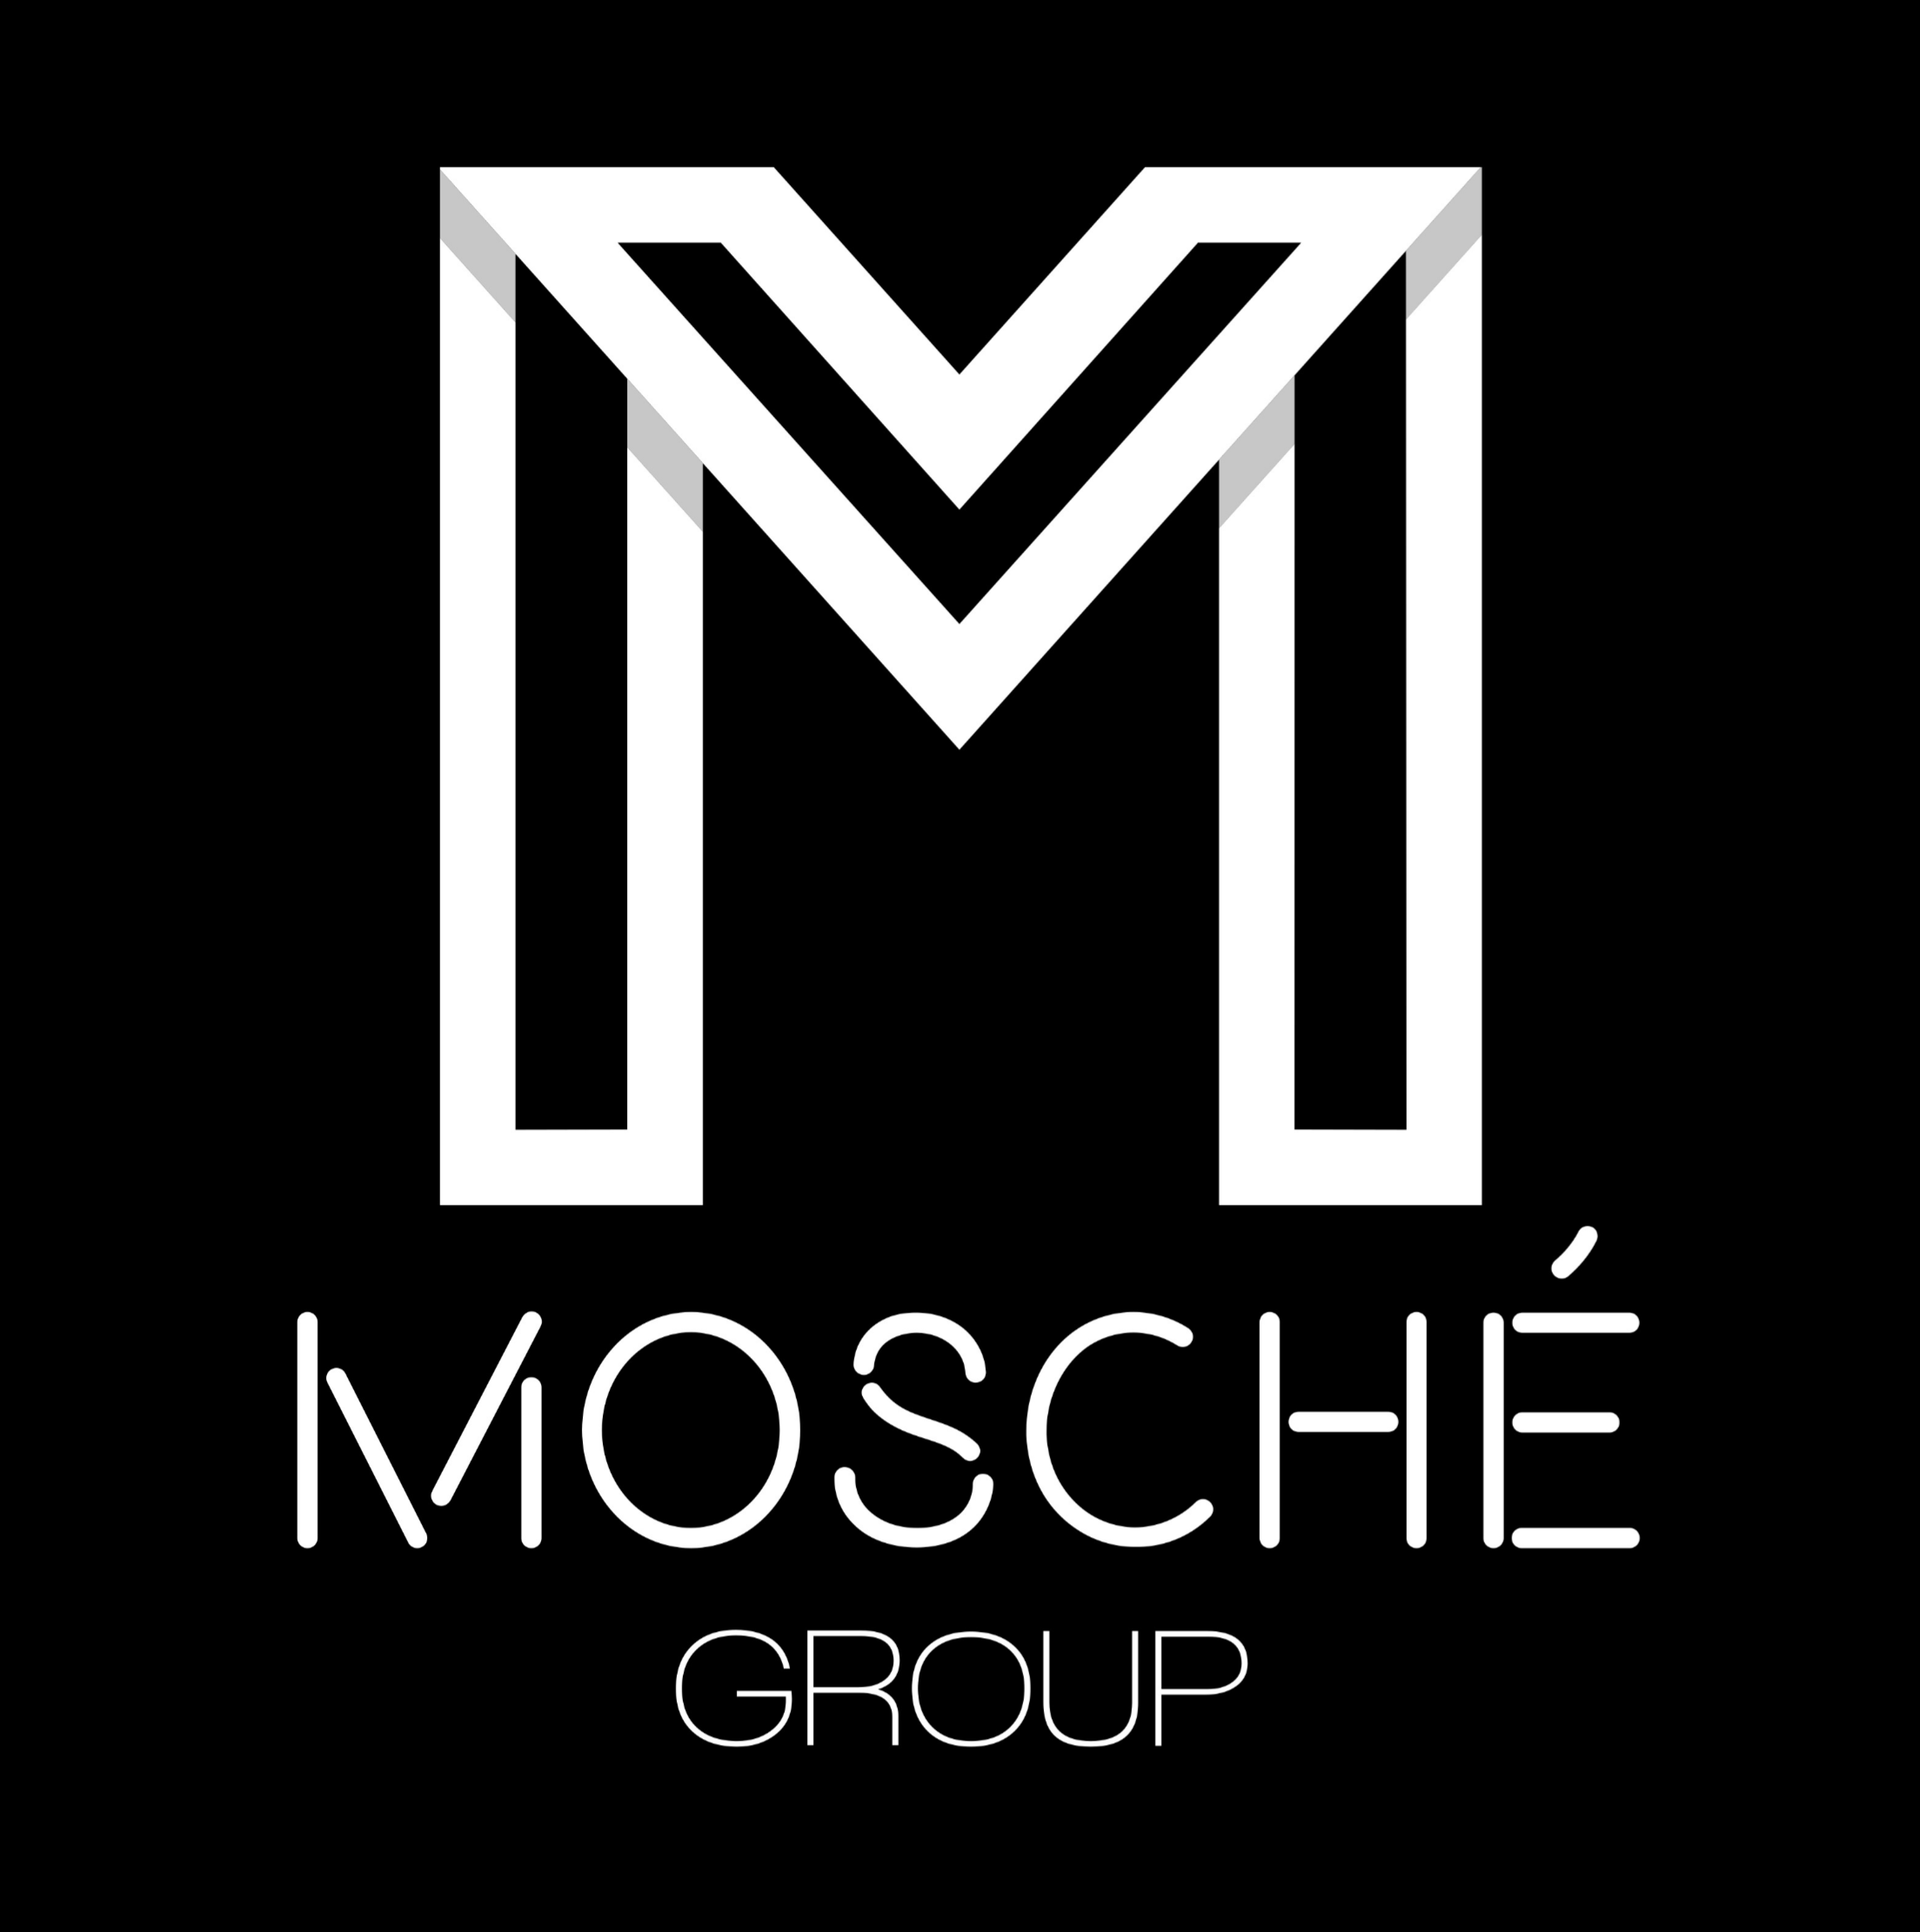 Mosche Group